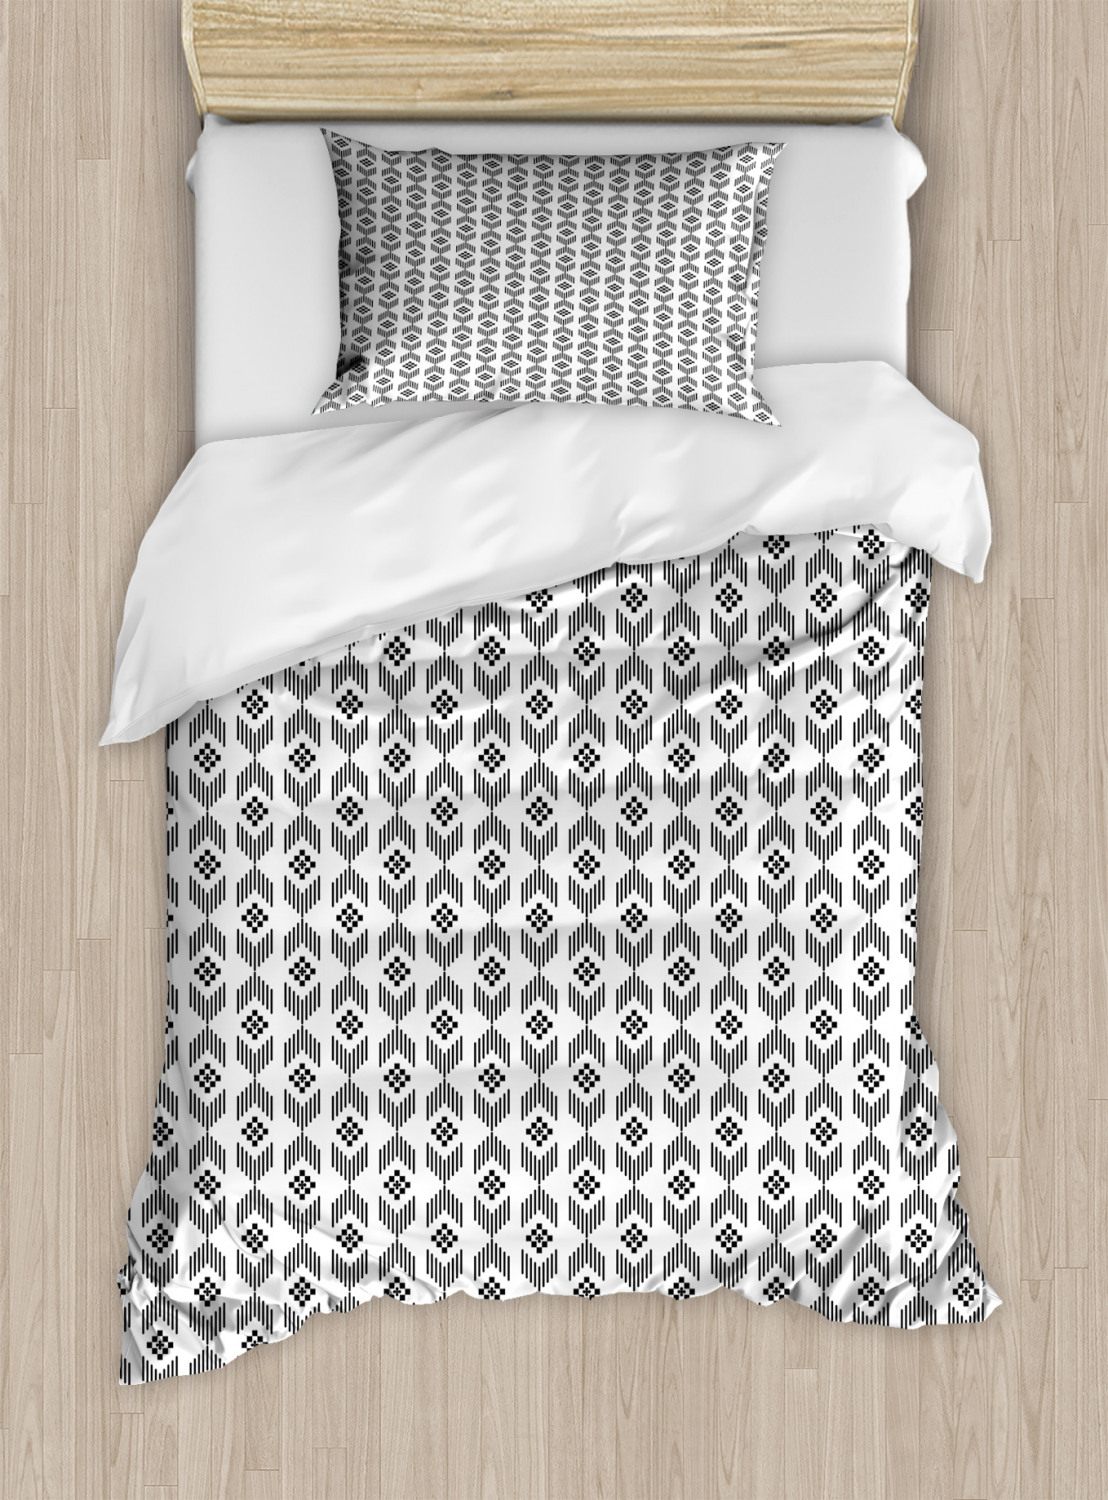 Timeless-Oriental-Duvet-Cover-Set-Twin-Queen-King-Sizes-with-Pillow-Shams thumbnail 10